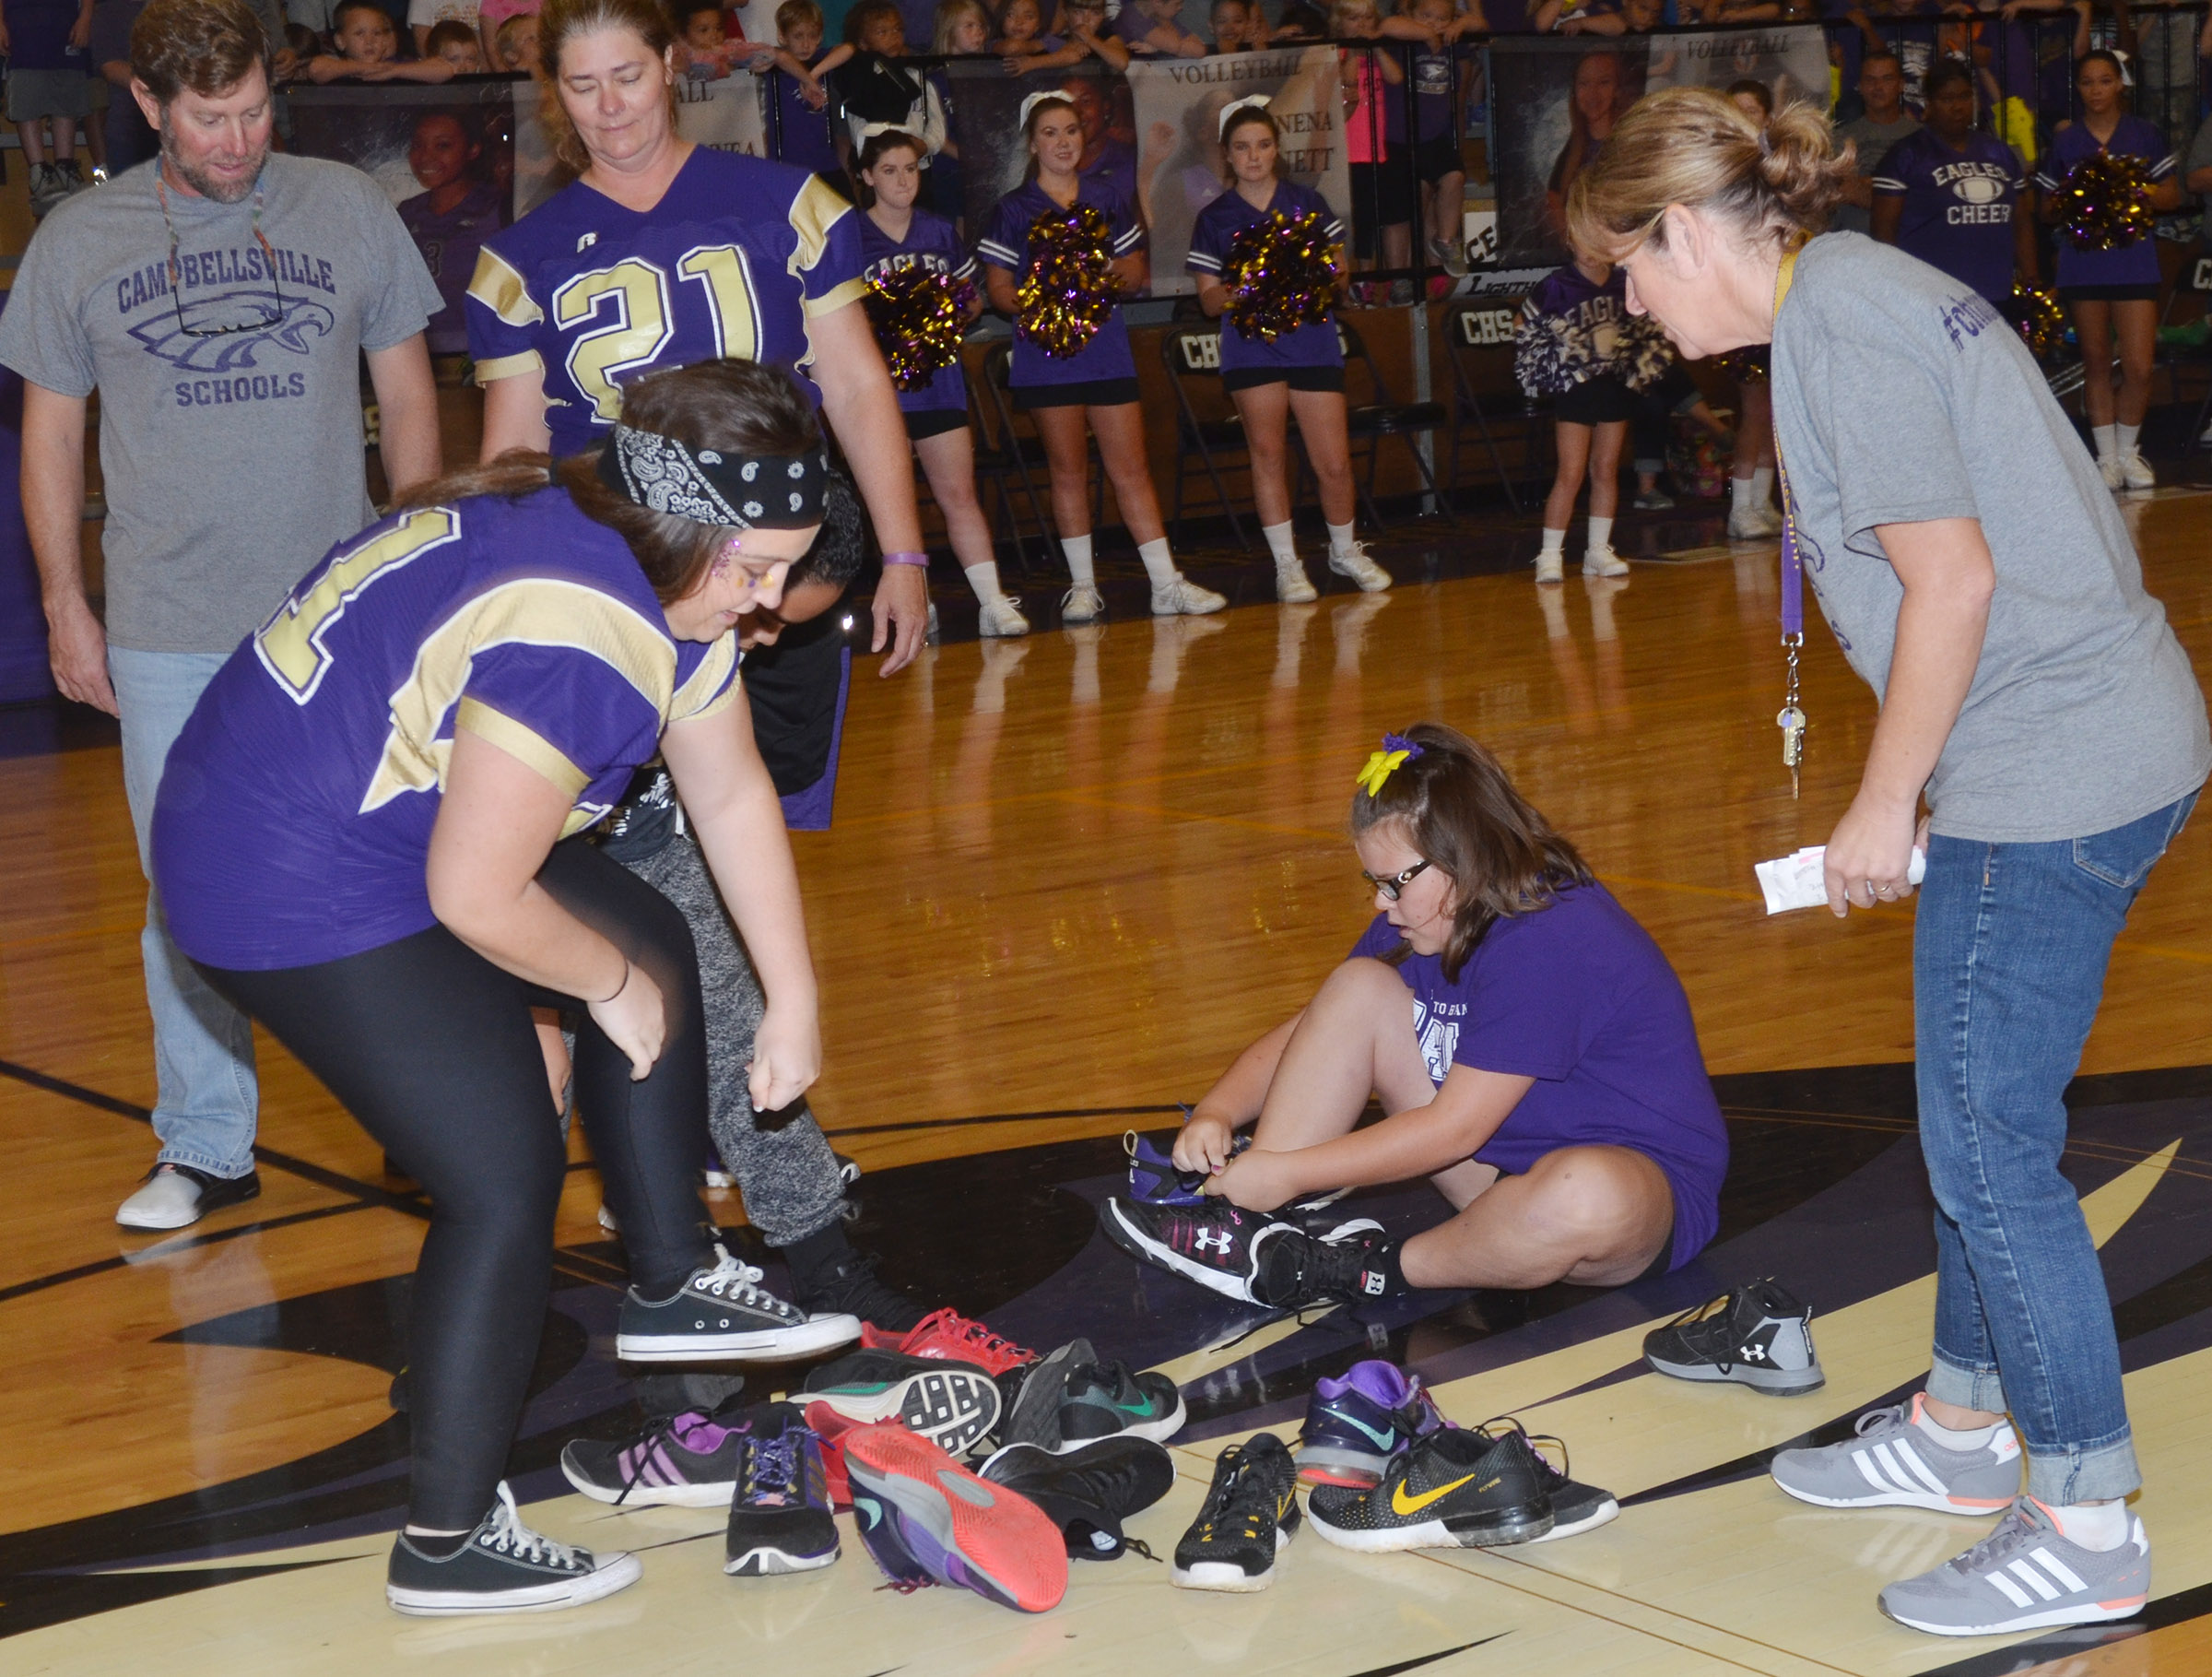 CHS senior Caitlin Bright, at left, and CES fifth-grader Keeley Dicken compete in the shoe mountain game.